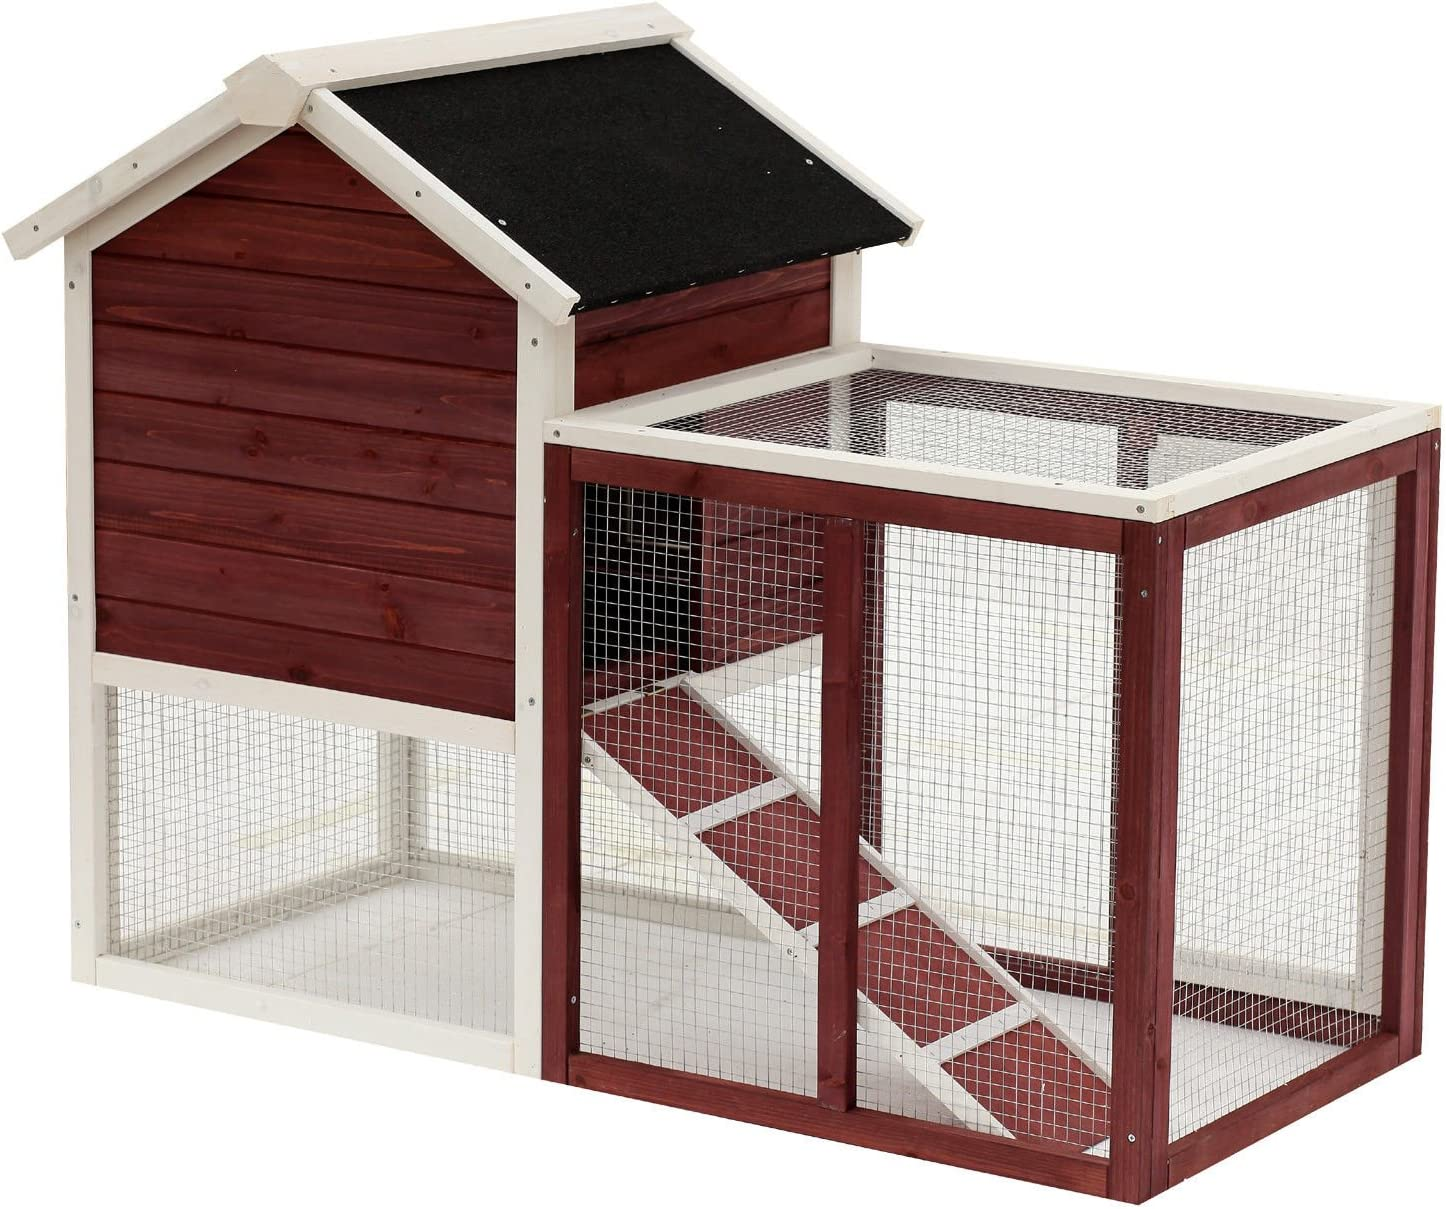 Amazon Com Pawhut 48 Weatherproof Wooden Rabbit Hutch With Asphalt Roof Outdoor Run For Ferrets Other Small Animals Brown Pet Supplies